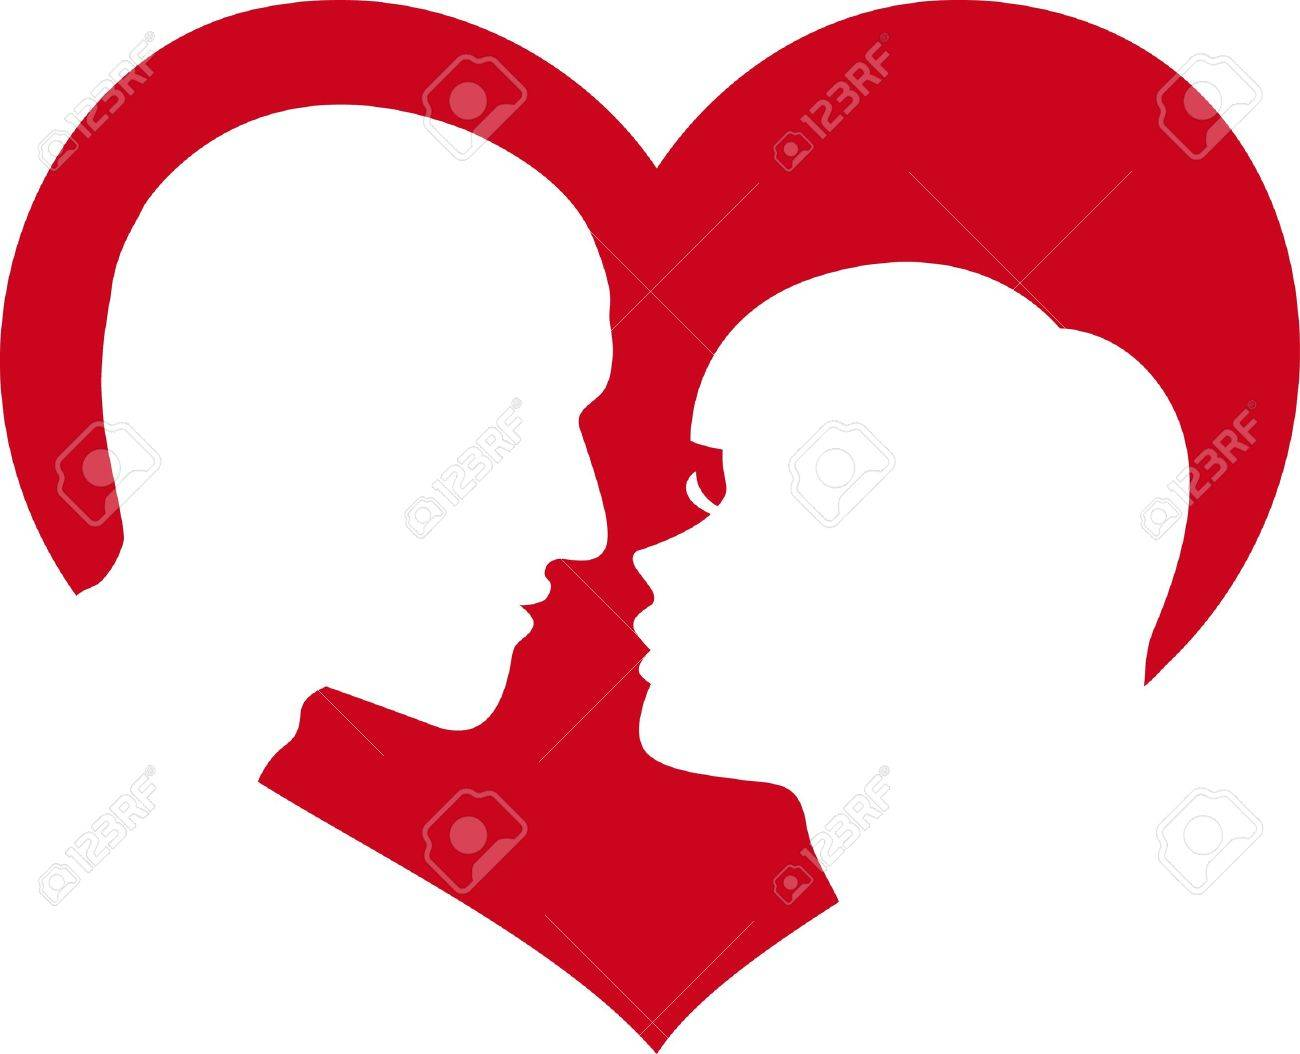 Man And Woman Lovers In Red Heart Royalty Free Cliparts, Vectors ...